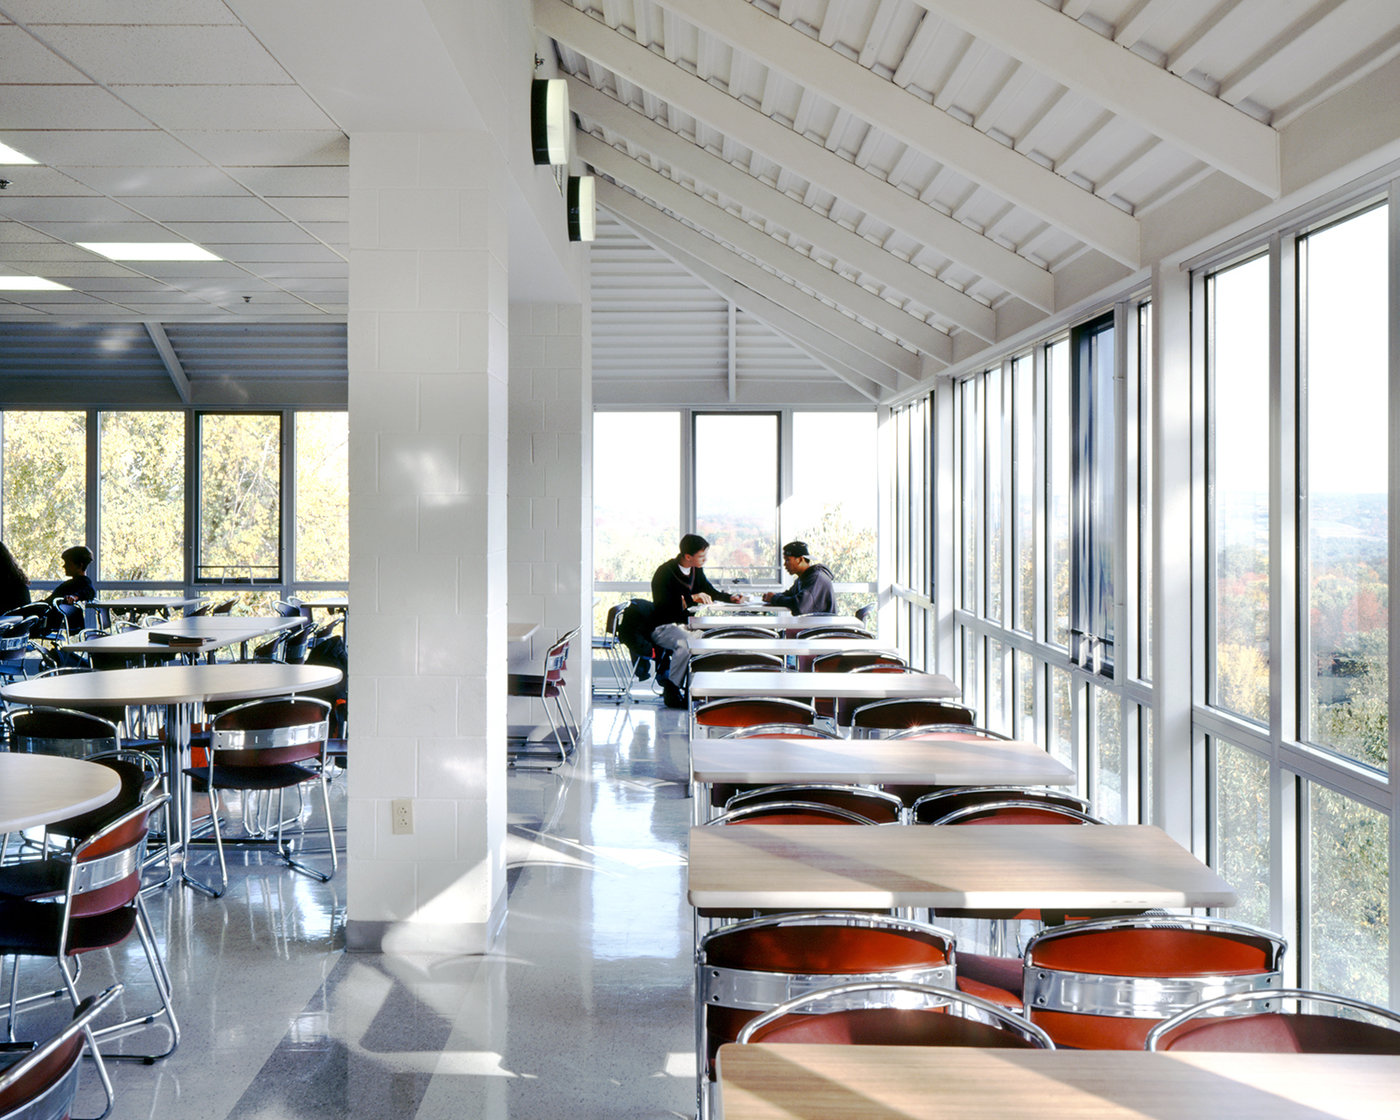 10 tskp woodstock academy master plan expansion interior detail cafeteria 1400 xxx q85